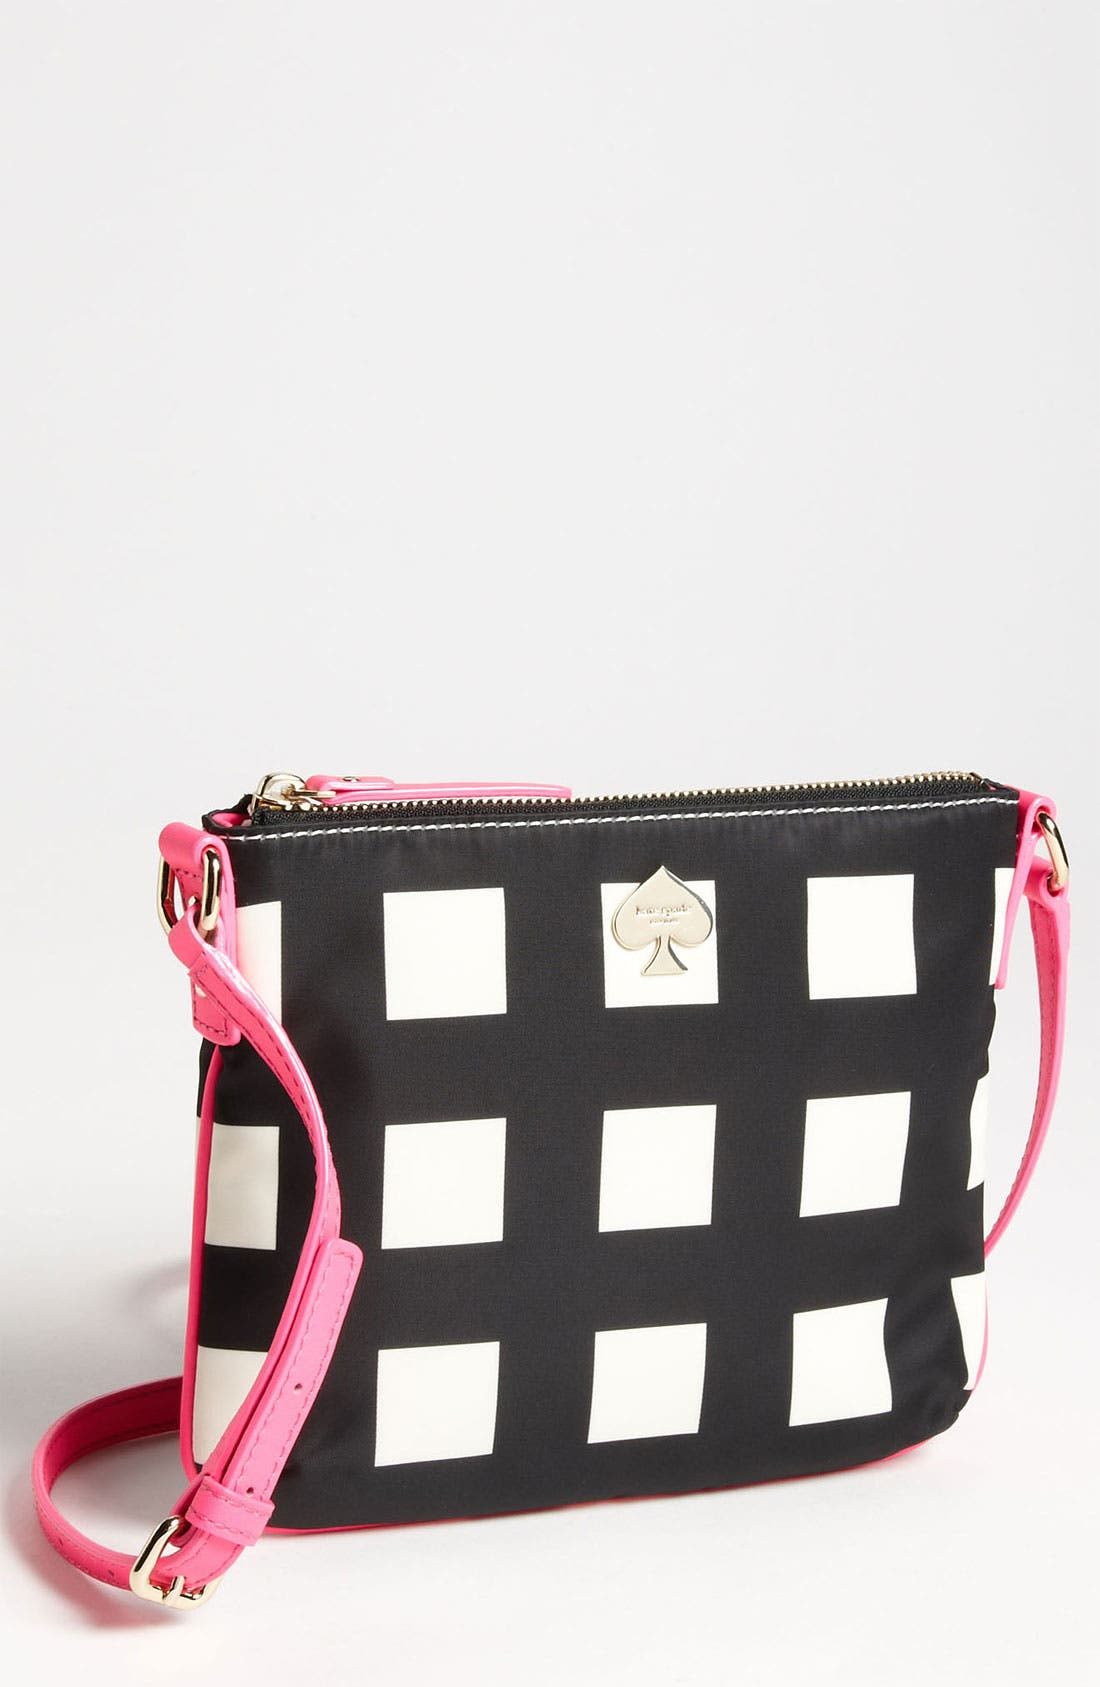 Main Image - kate spade new york 'berry street - tenley' crossbody bag